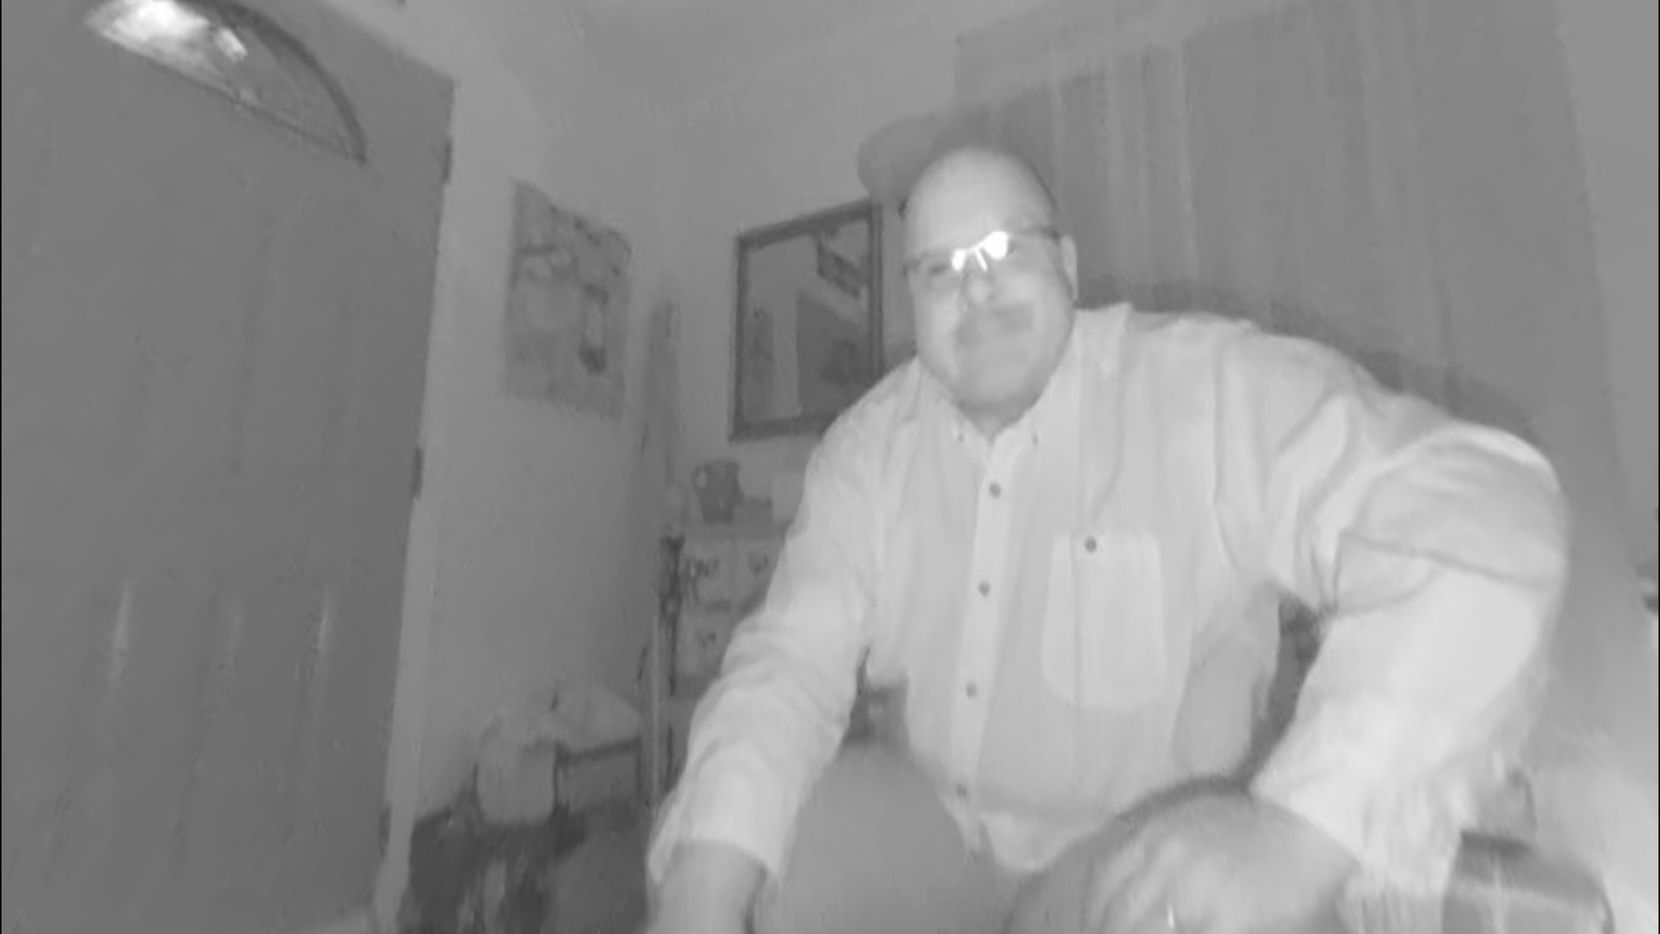 The Guardzilla 360 has good night vision. It captured this still image in almost complete darkness.